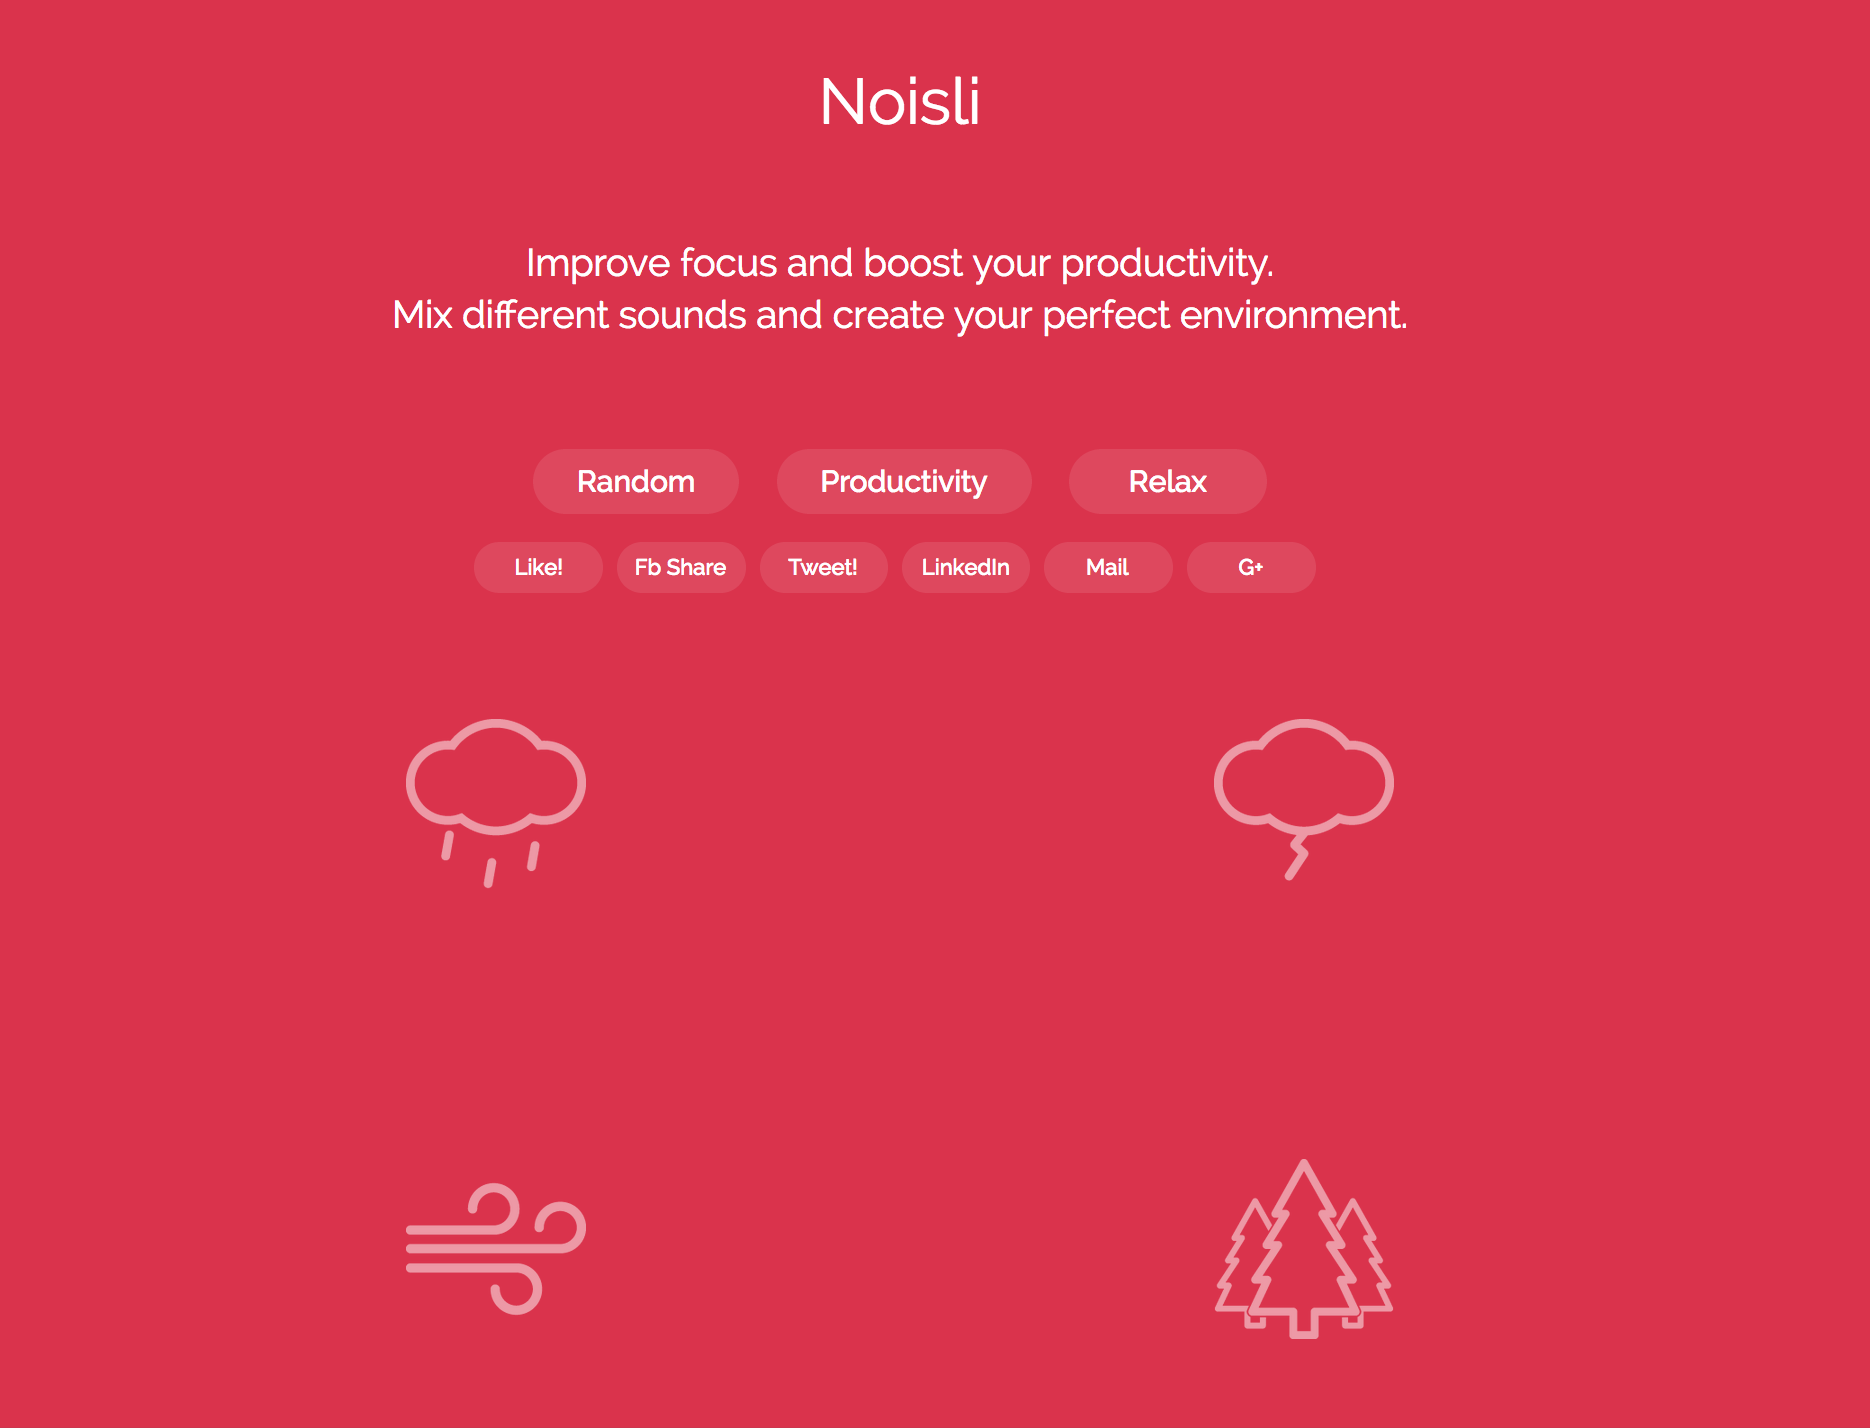 How to increase productivity with Noisli